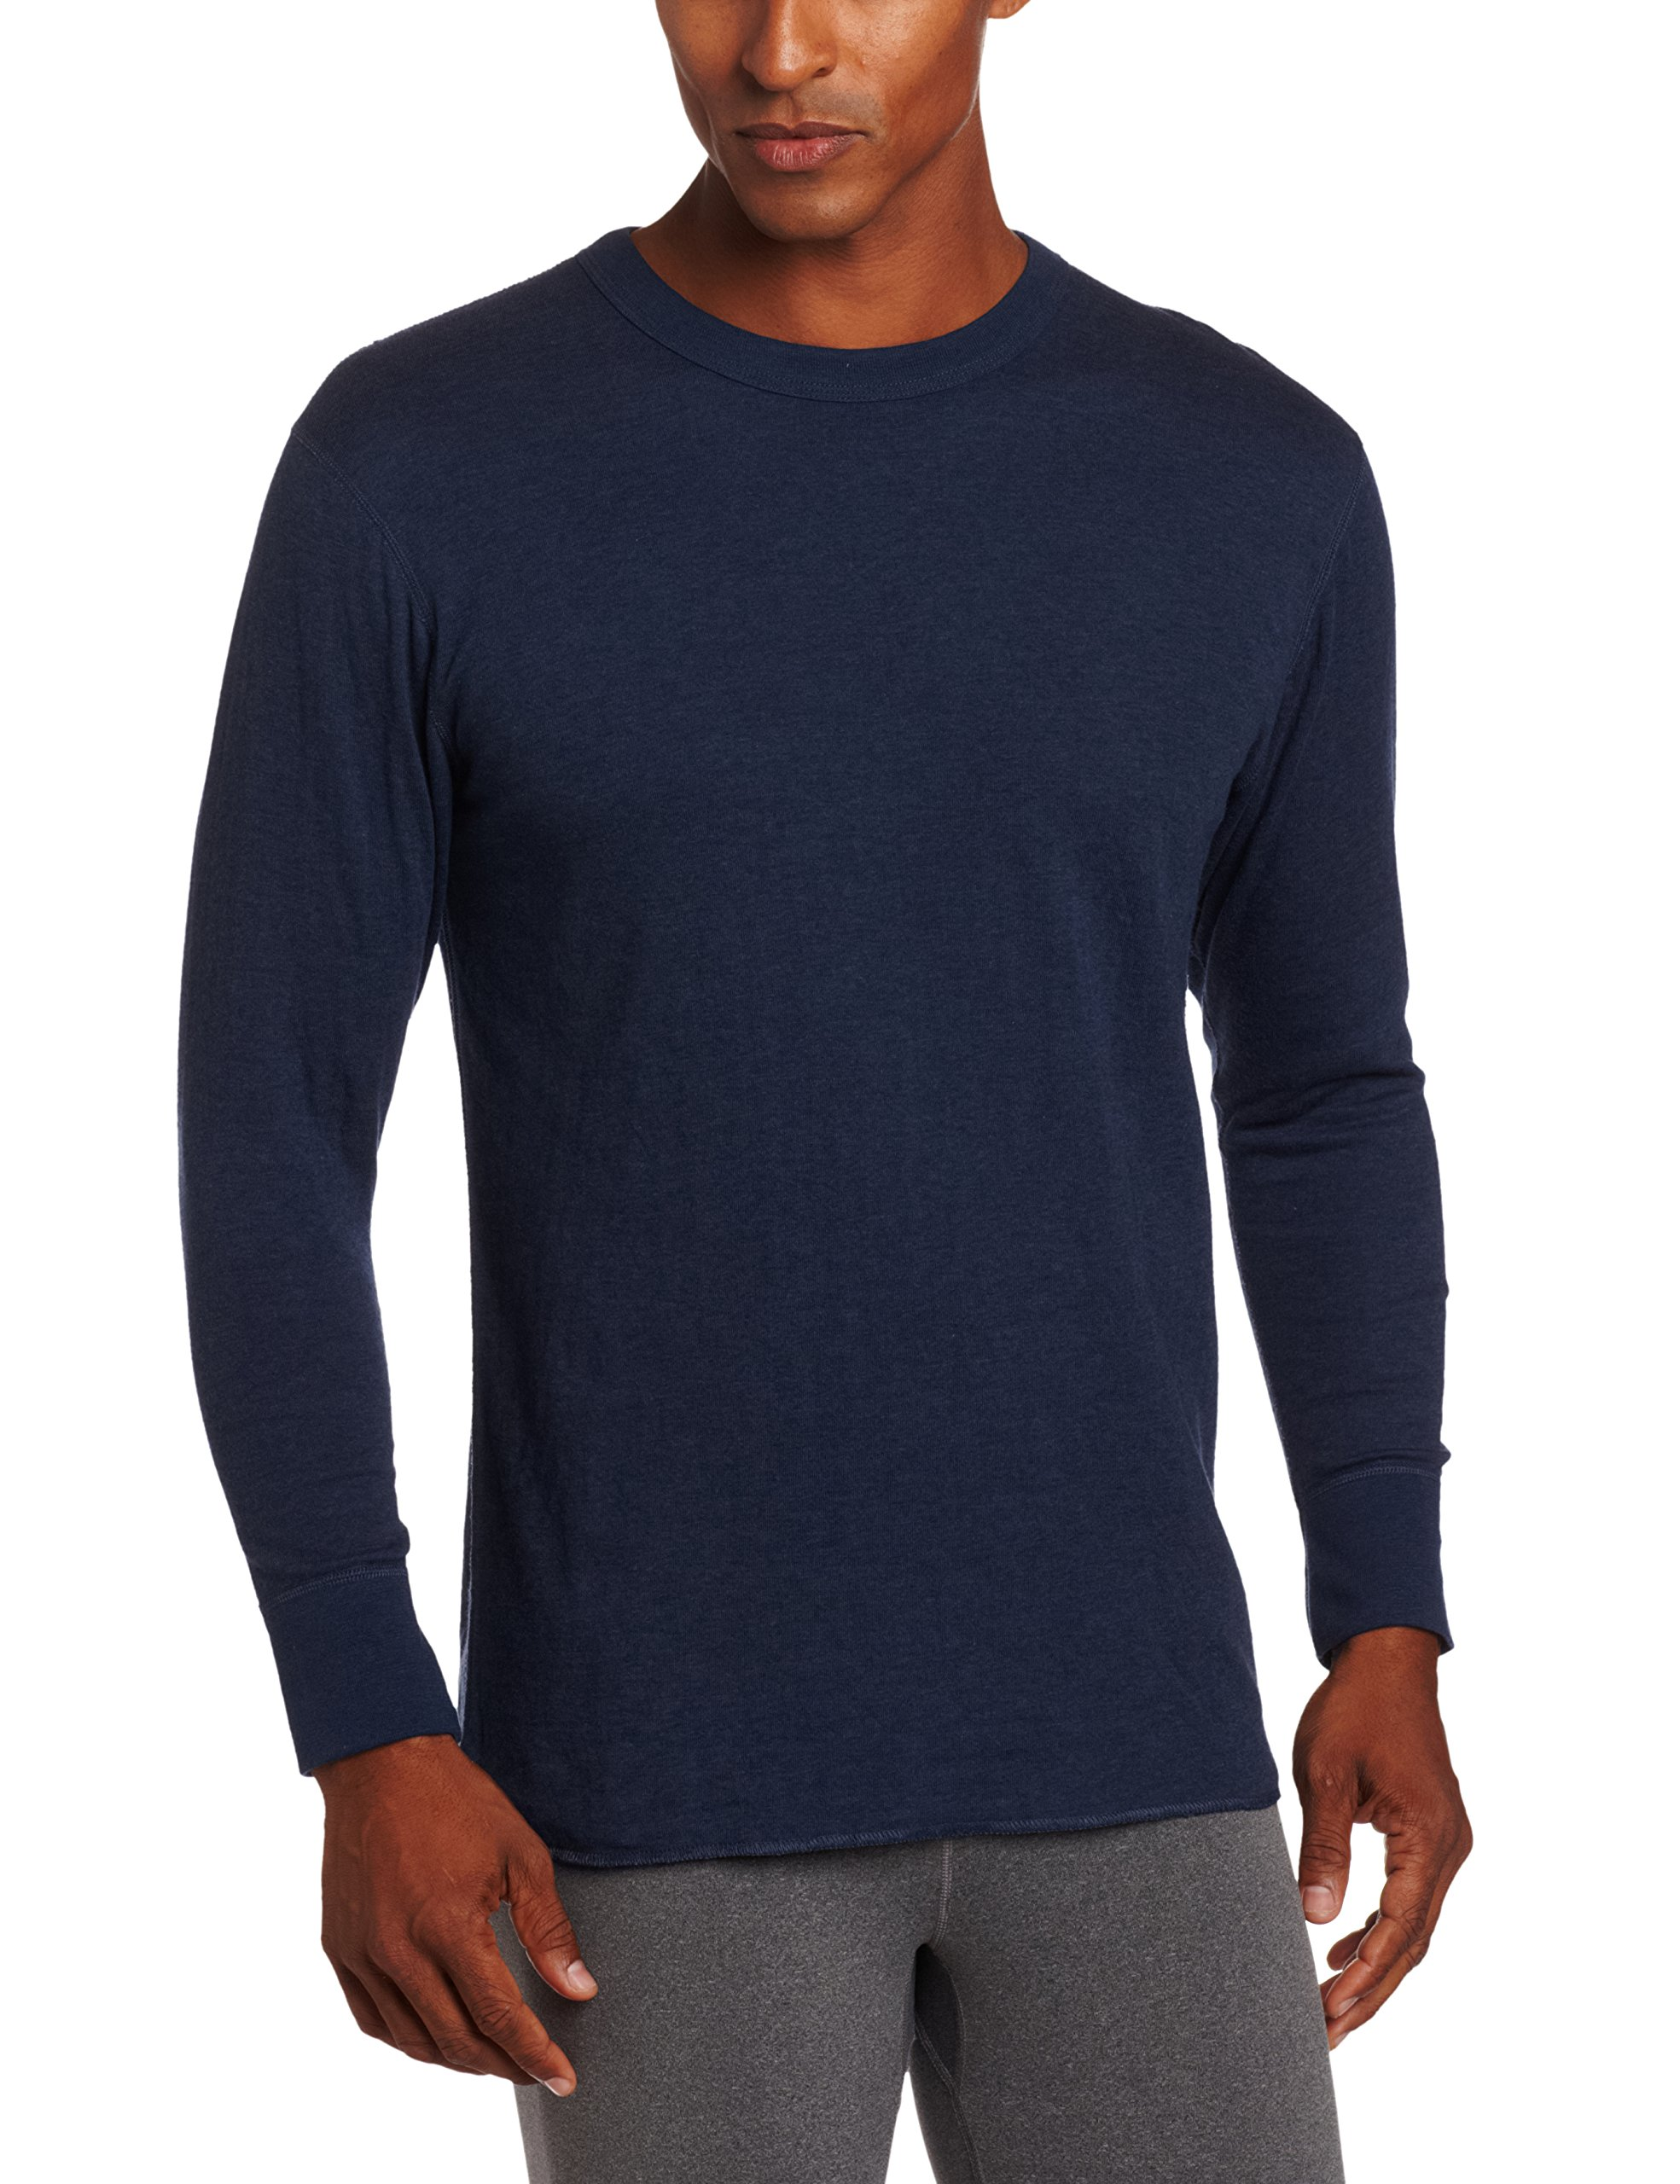 Duofold Men's Mid Weight Double Layer Thermal Shirt, Blue Jean, Large by Duofold